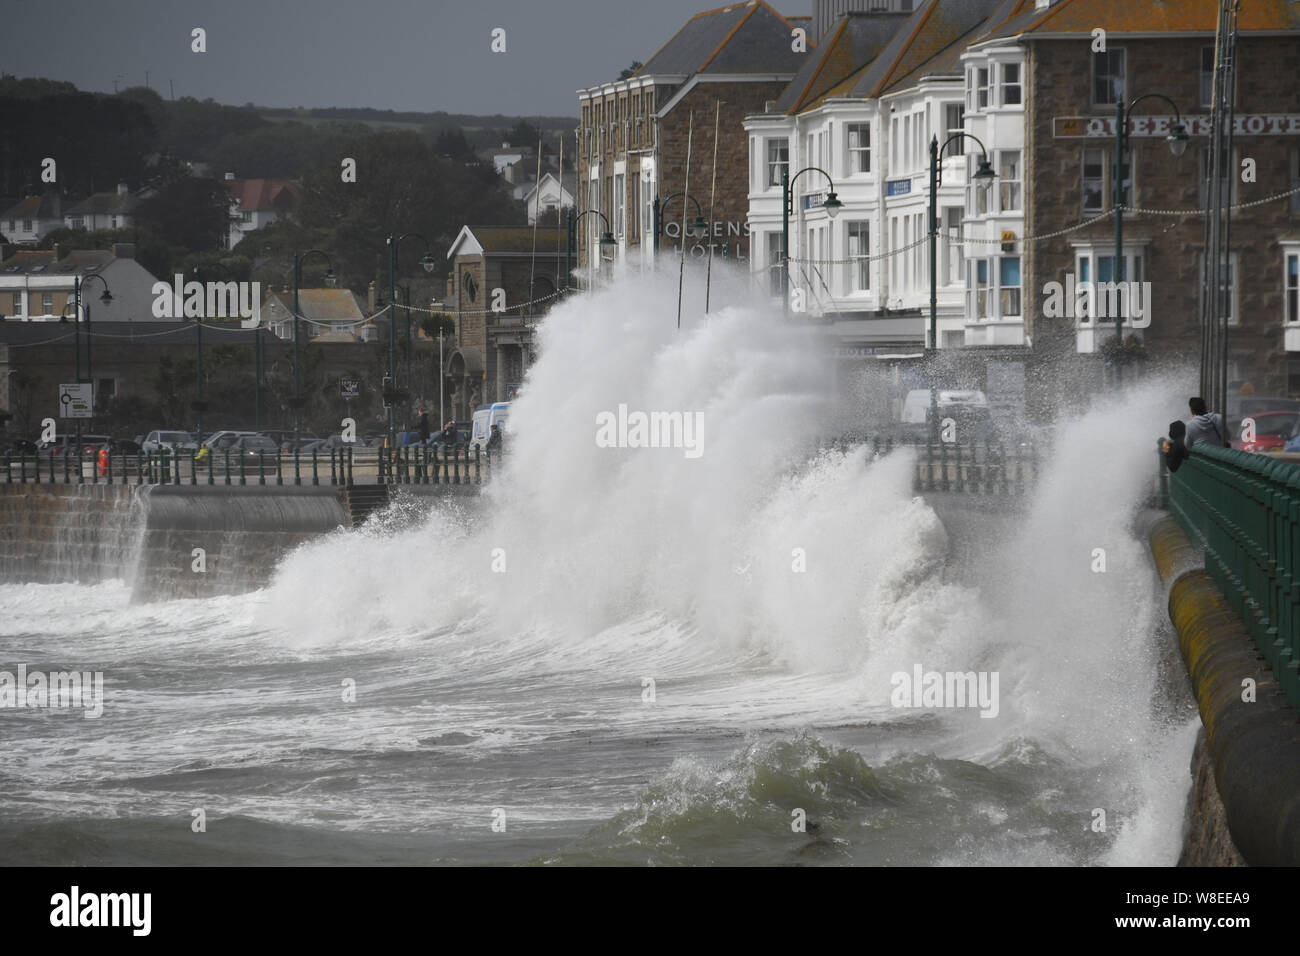 Penzance, Cornwall, UK. 9th August 2019. UK Weather. Strong winds and huge waves batter the seafront at Penzance this lunchtime. Credit SImon Maycock / Alamy Live News. Stock Photo